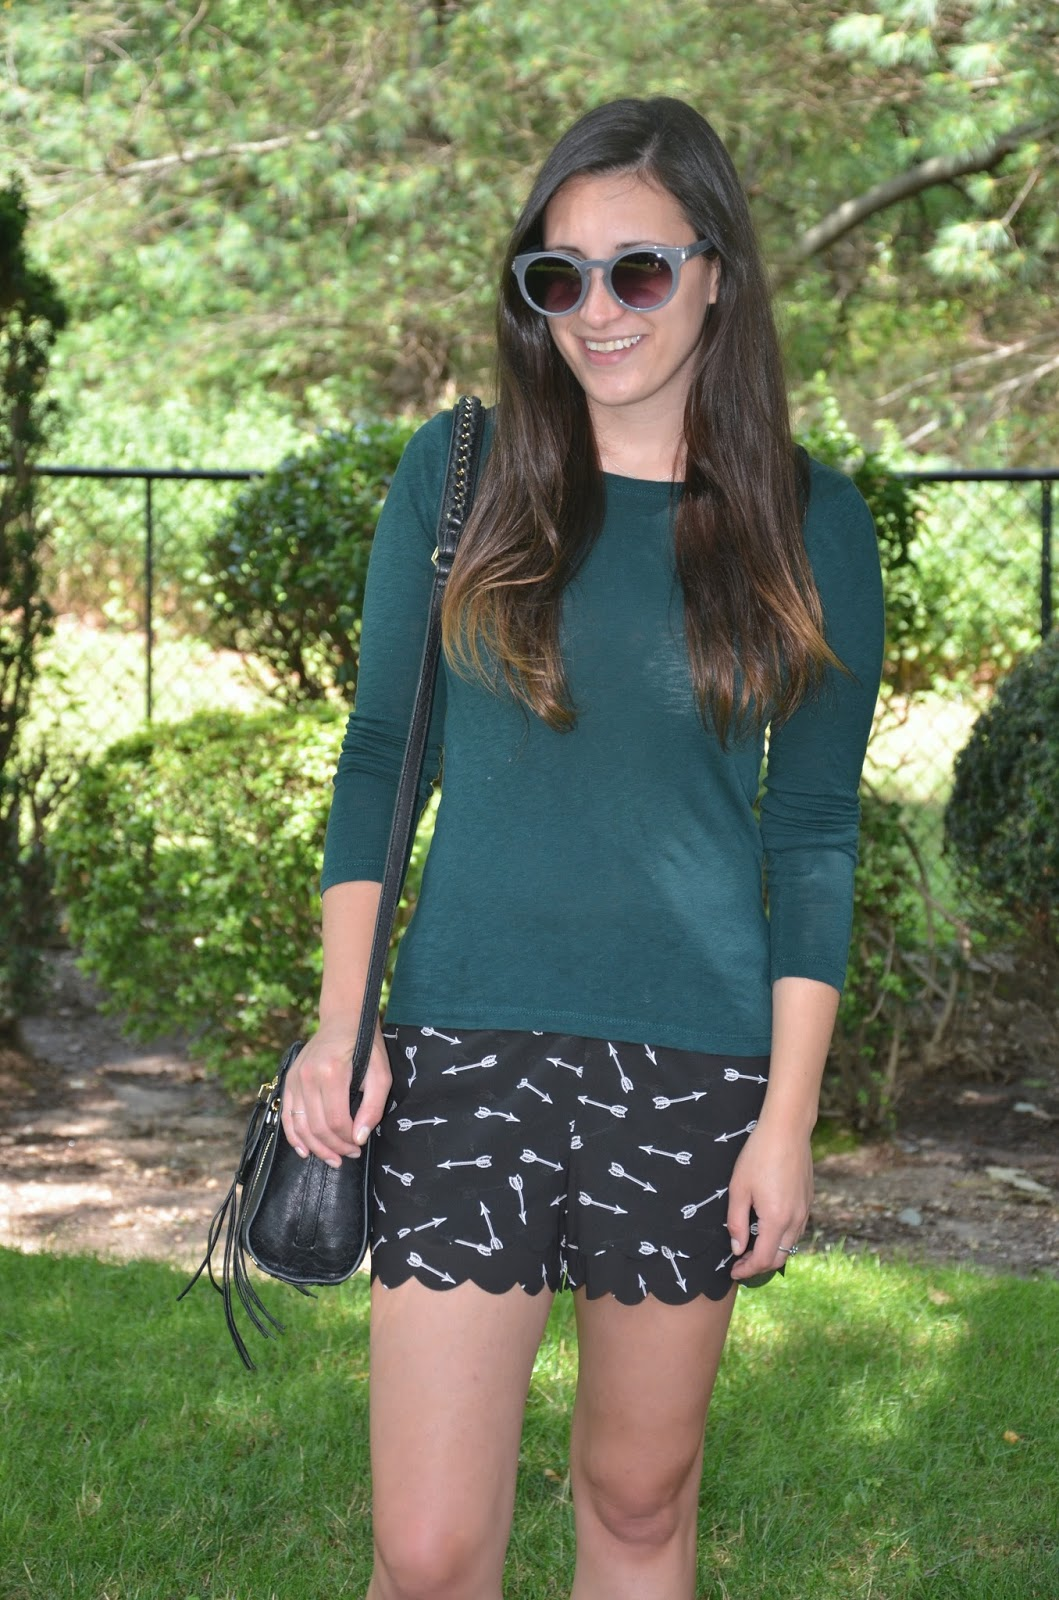 anthropologie arrow print shorts + long sleeves